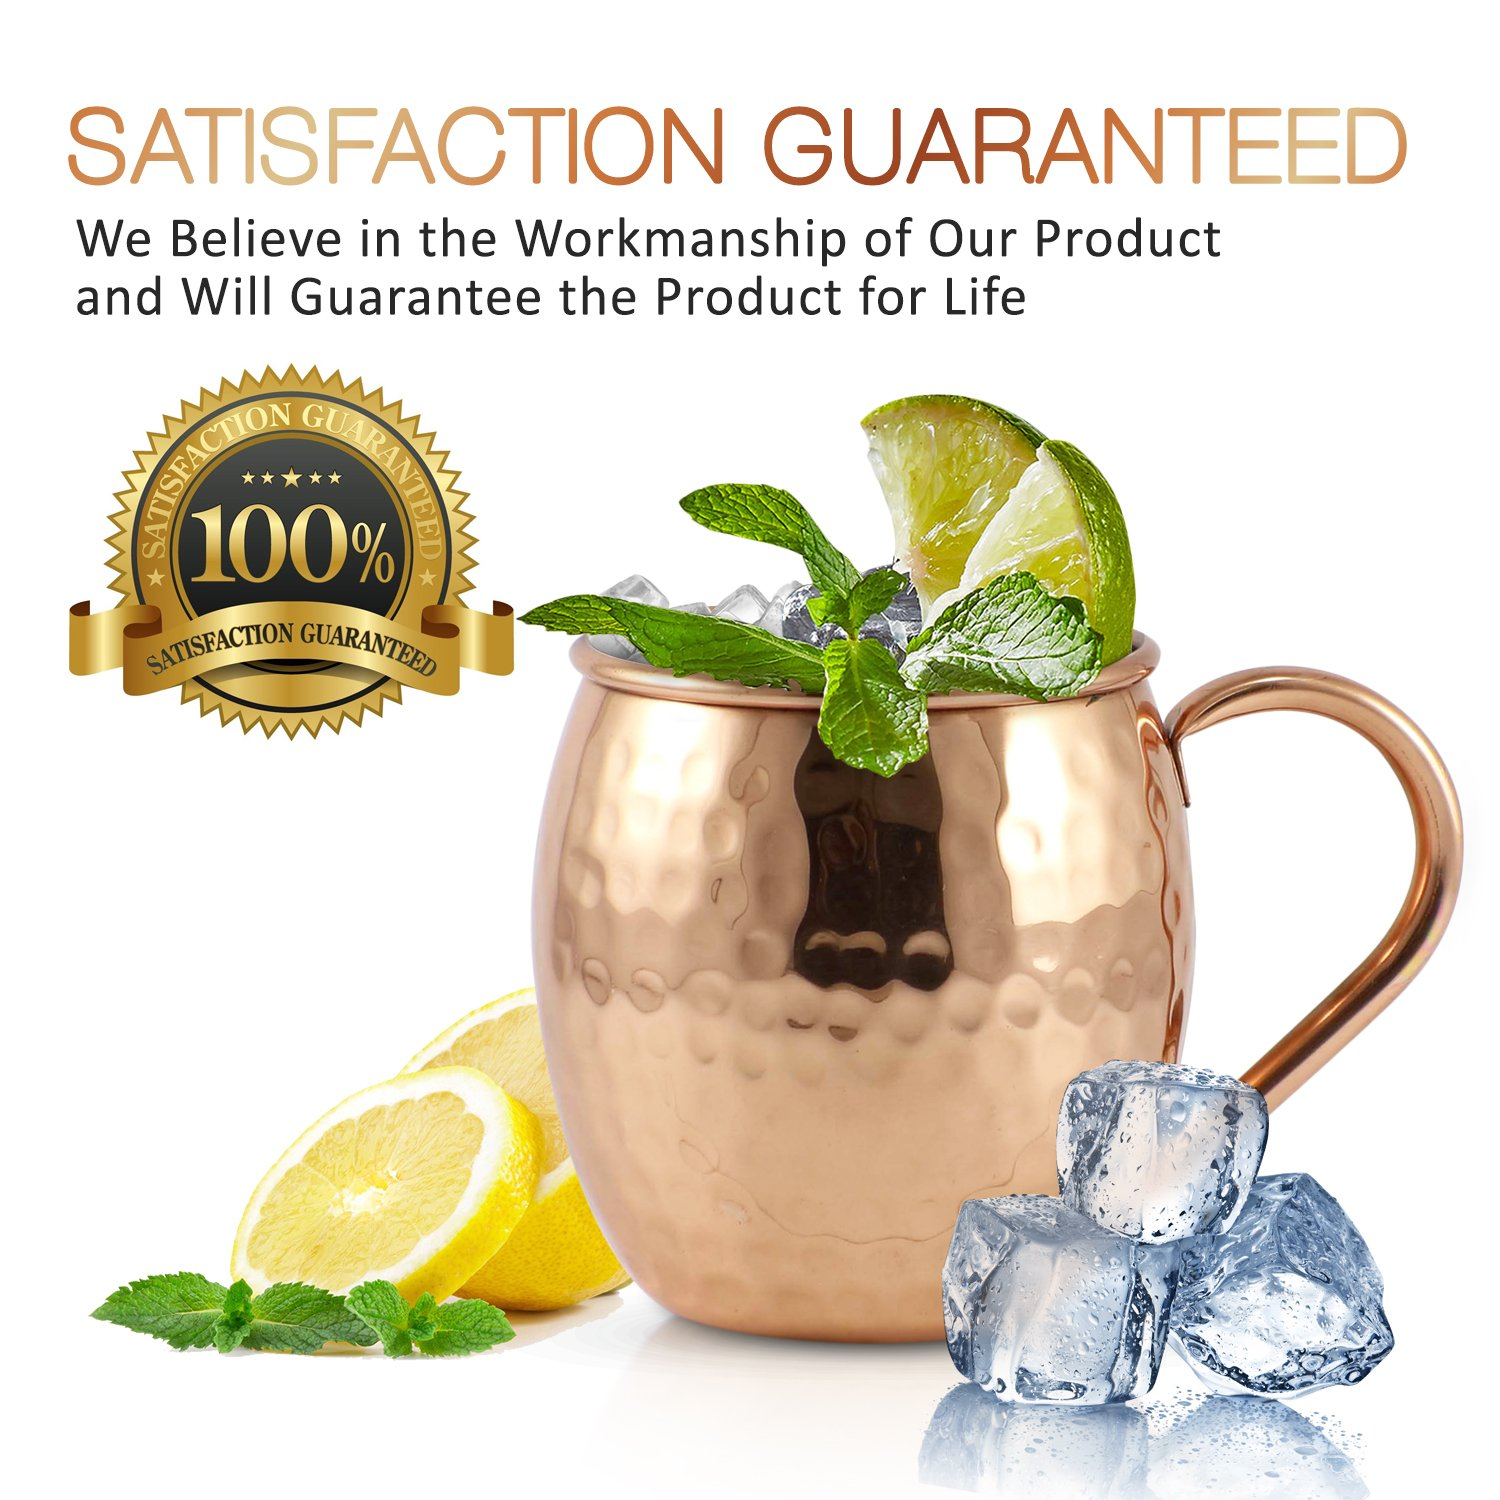 Set of 100 Pure Copper Moscow Mule Mugs by Mule Science with BONUS: Highest Quality Cocktail Copper 100 Straws, 2 Shot glasses and 100 coasters! by Advanced Mixology (Image #2)